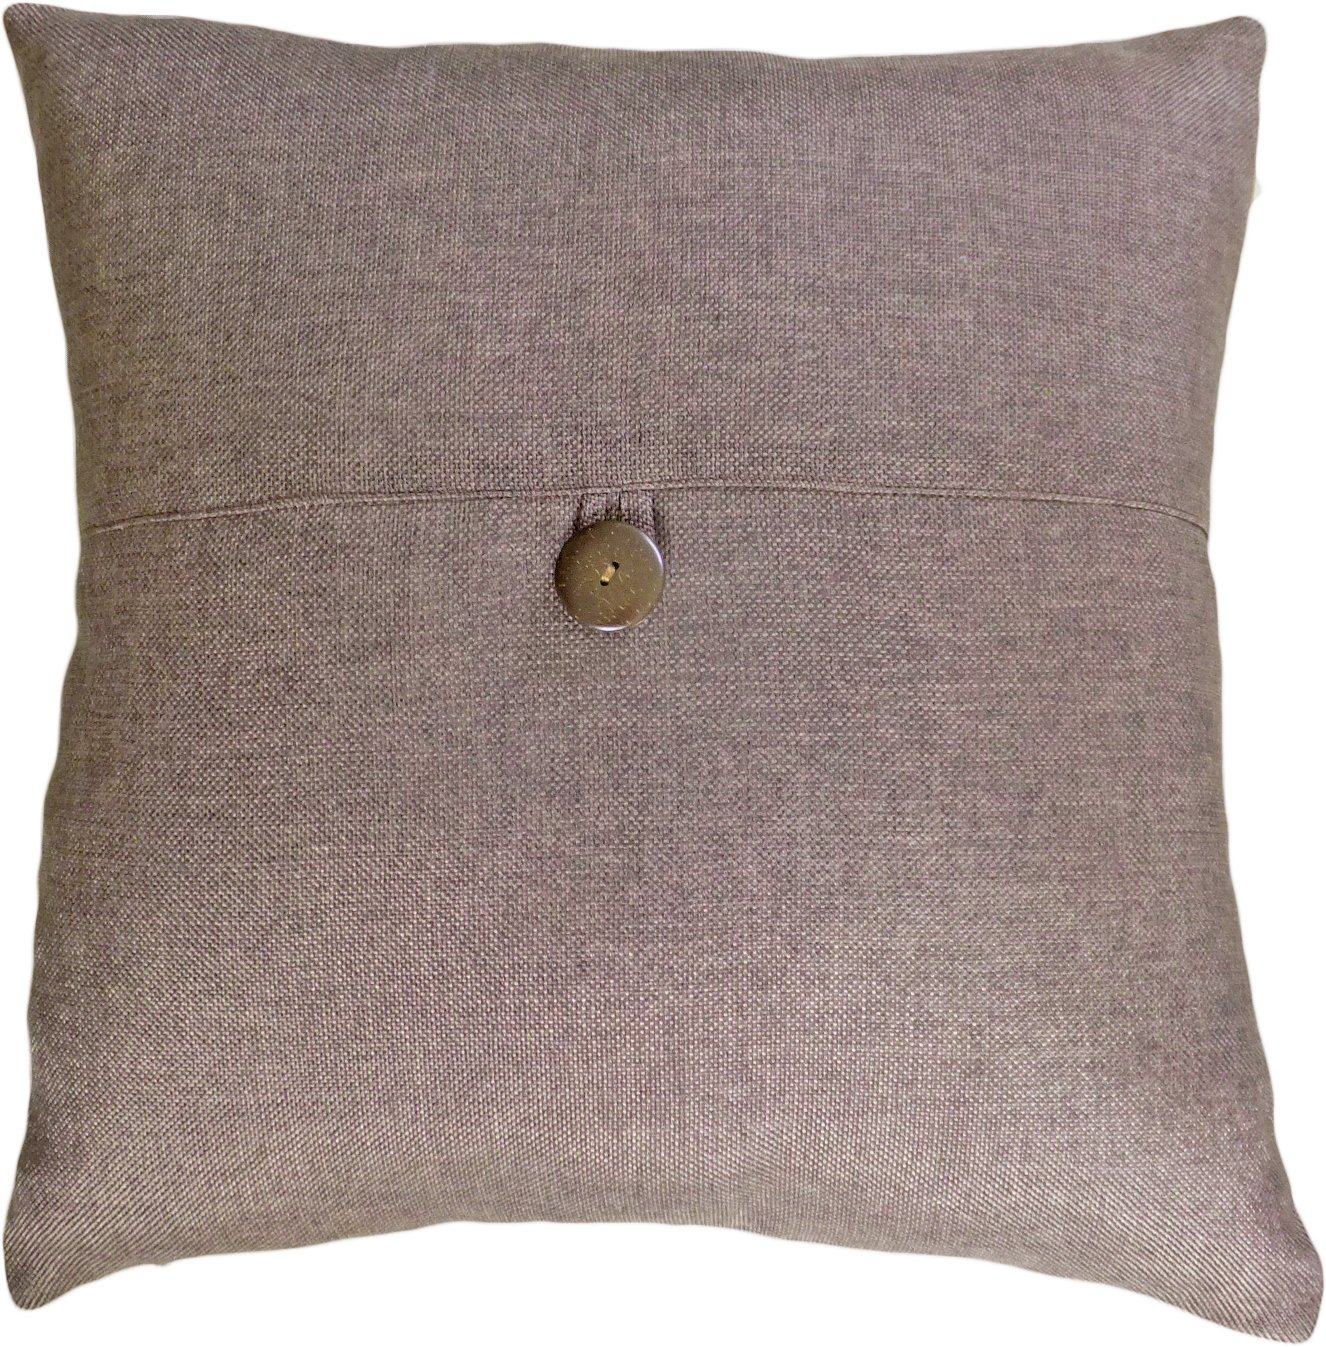 Decorative Button Brown Throw Pillow Cover 18' 5927315